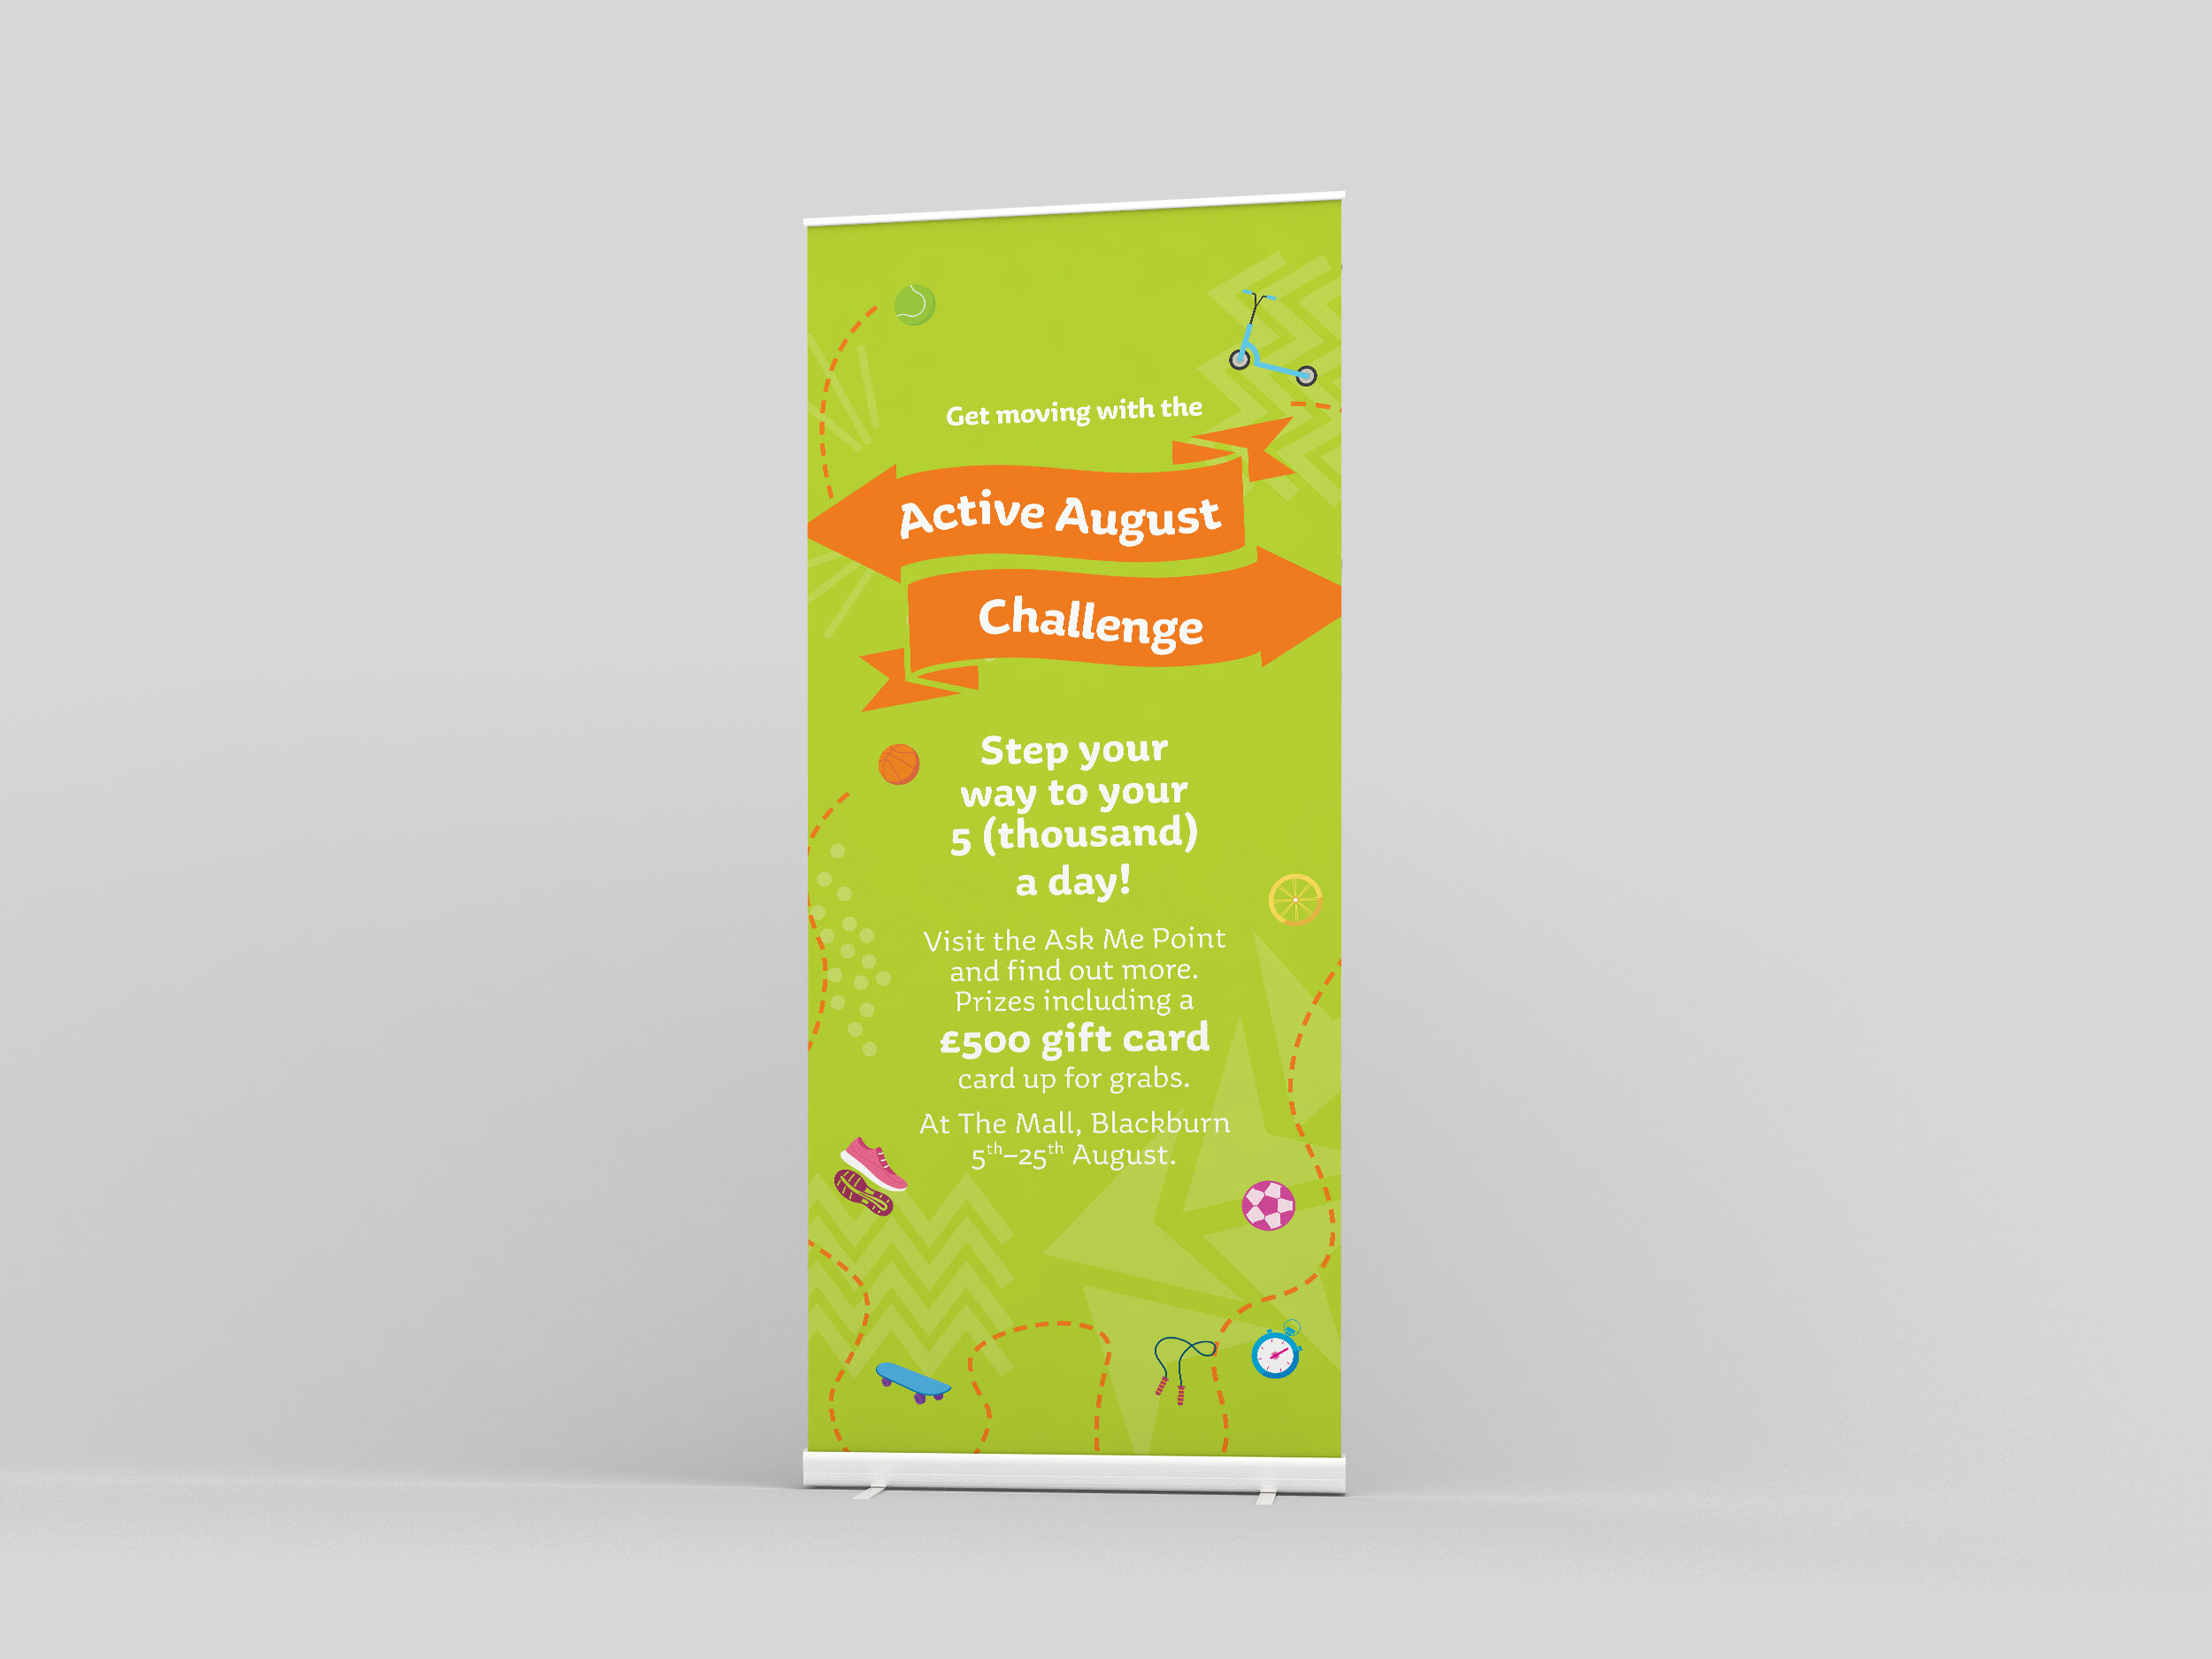 ActiveAugust_Rollup-Mockup.jpg